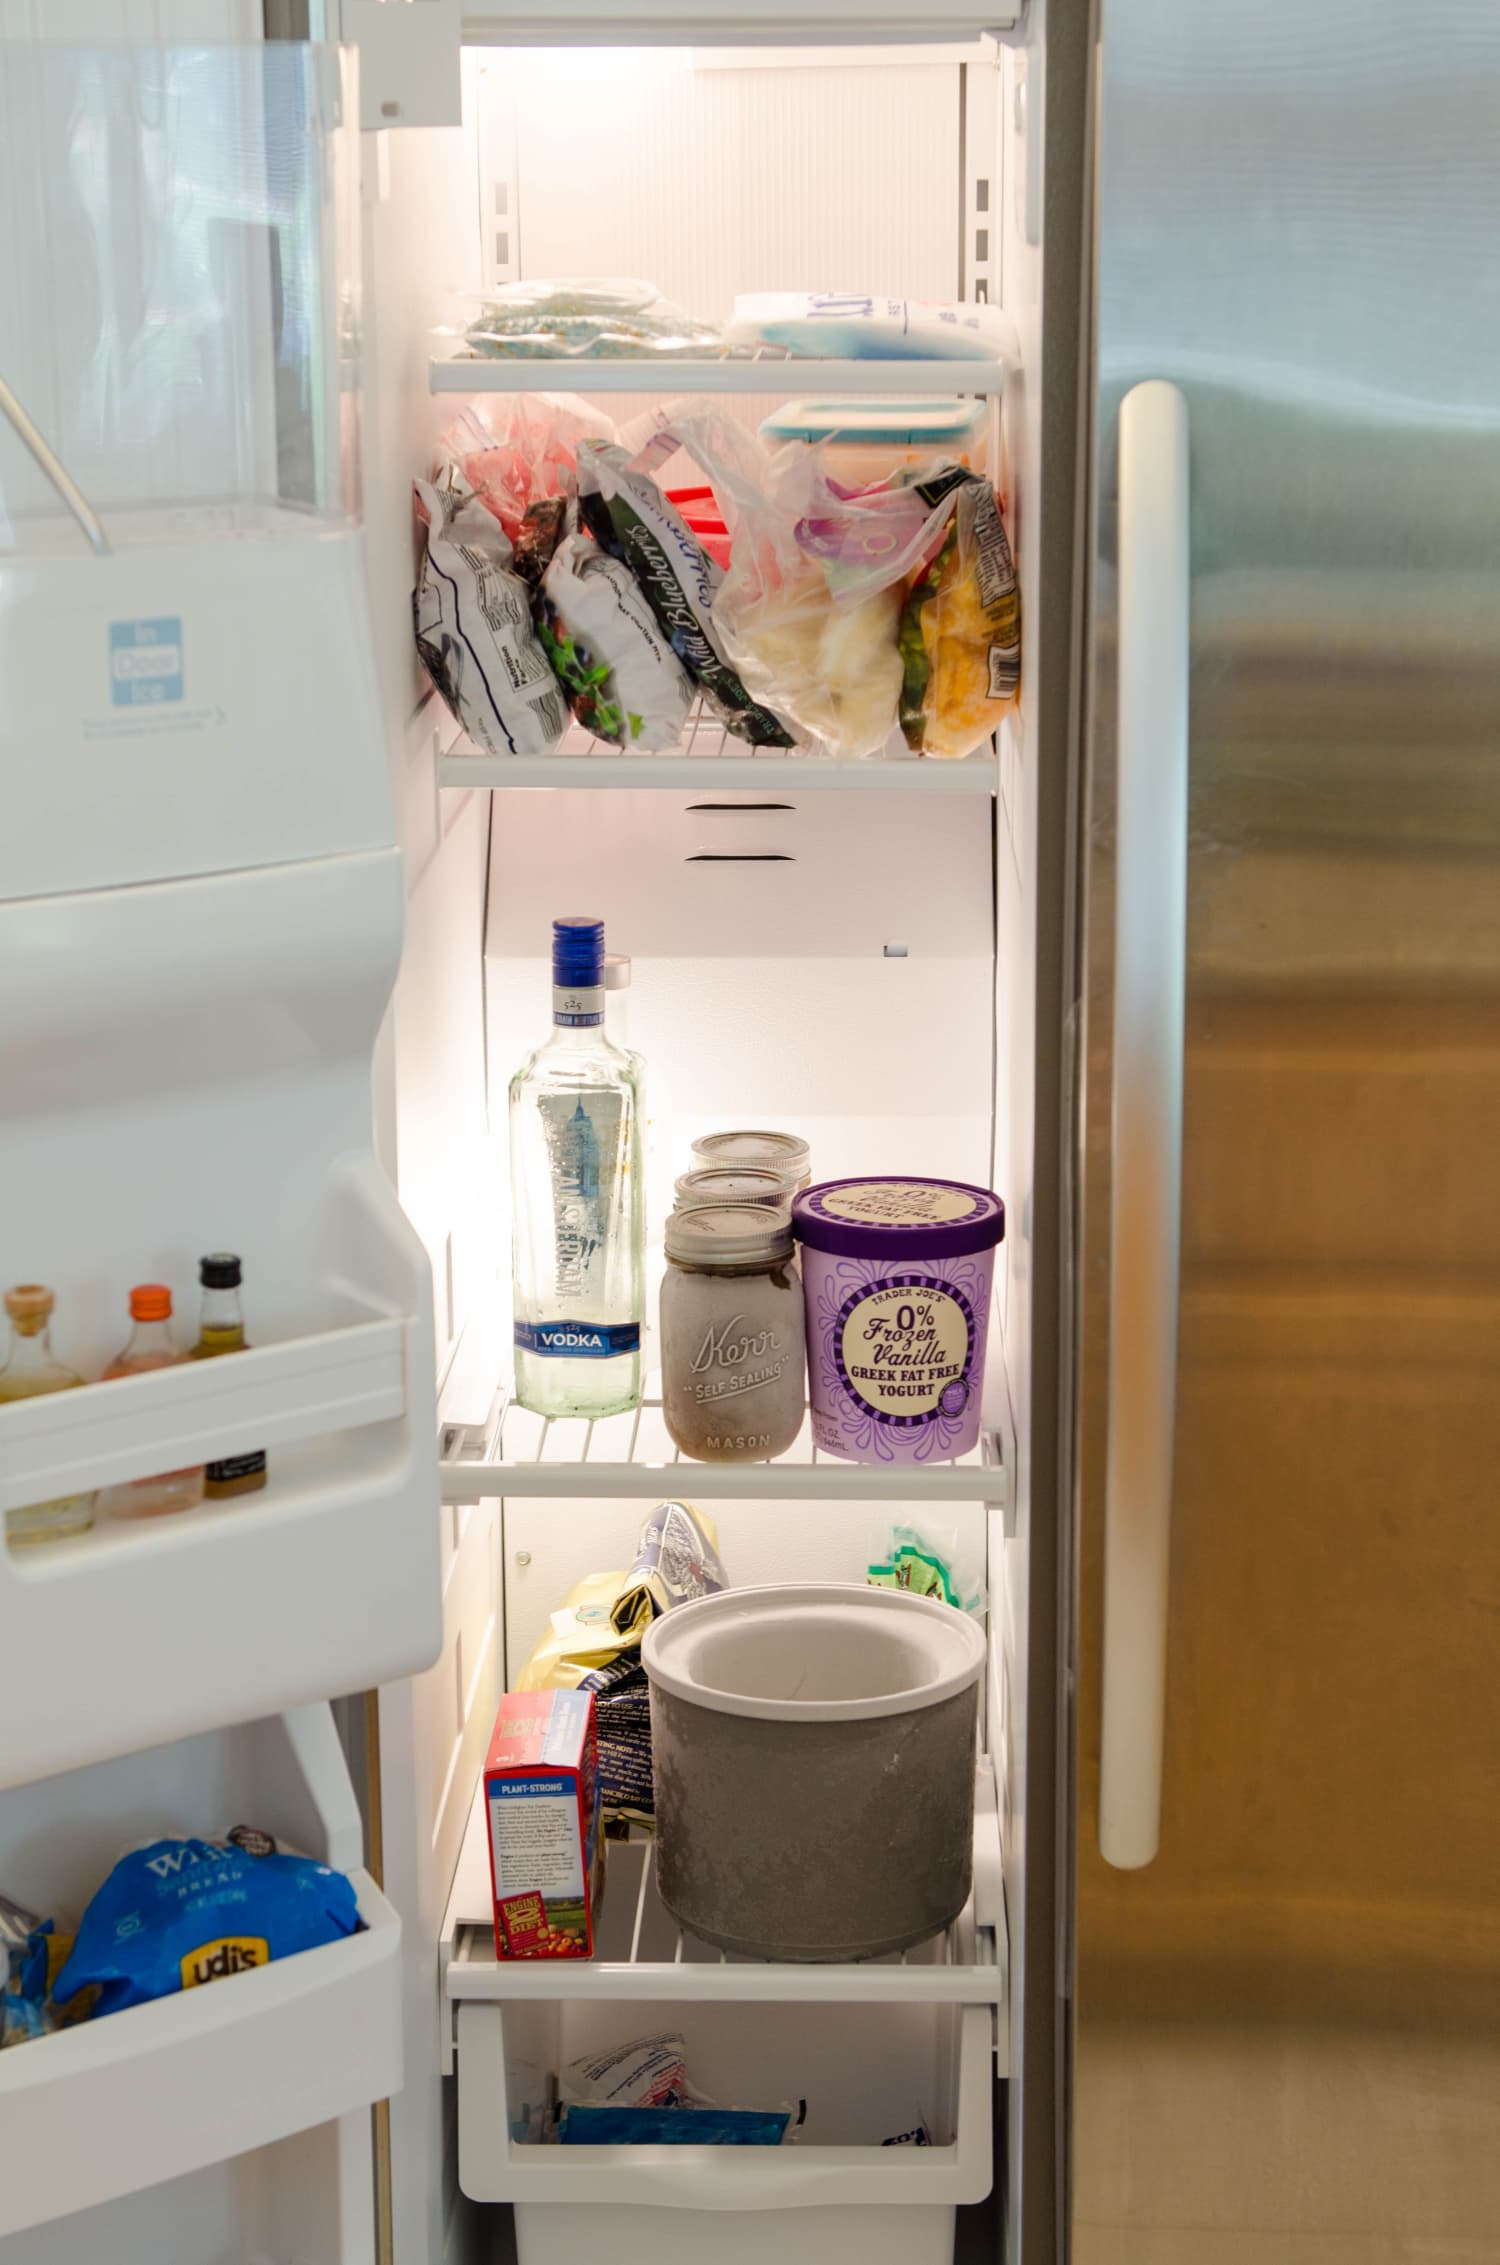 How To Clean The Freezer | Kitchn